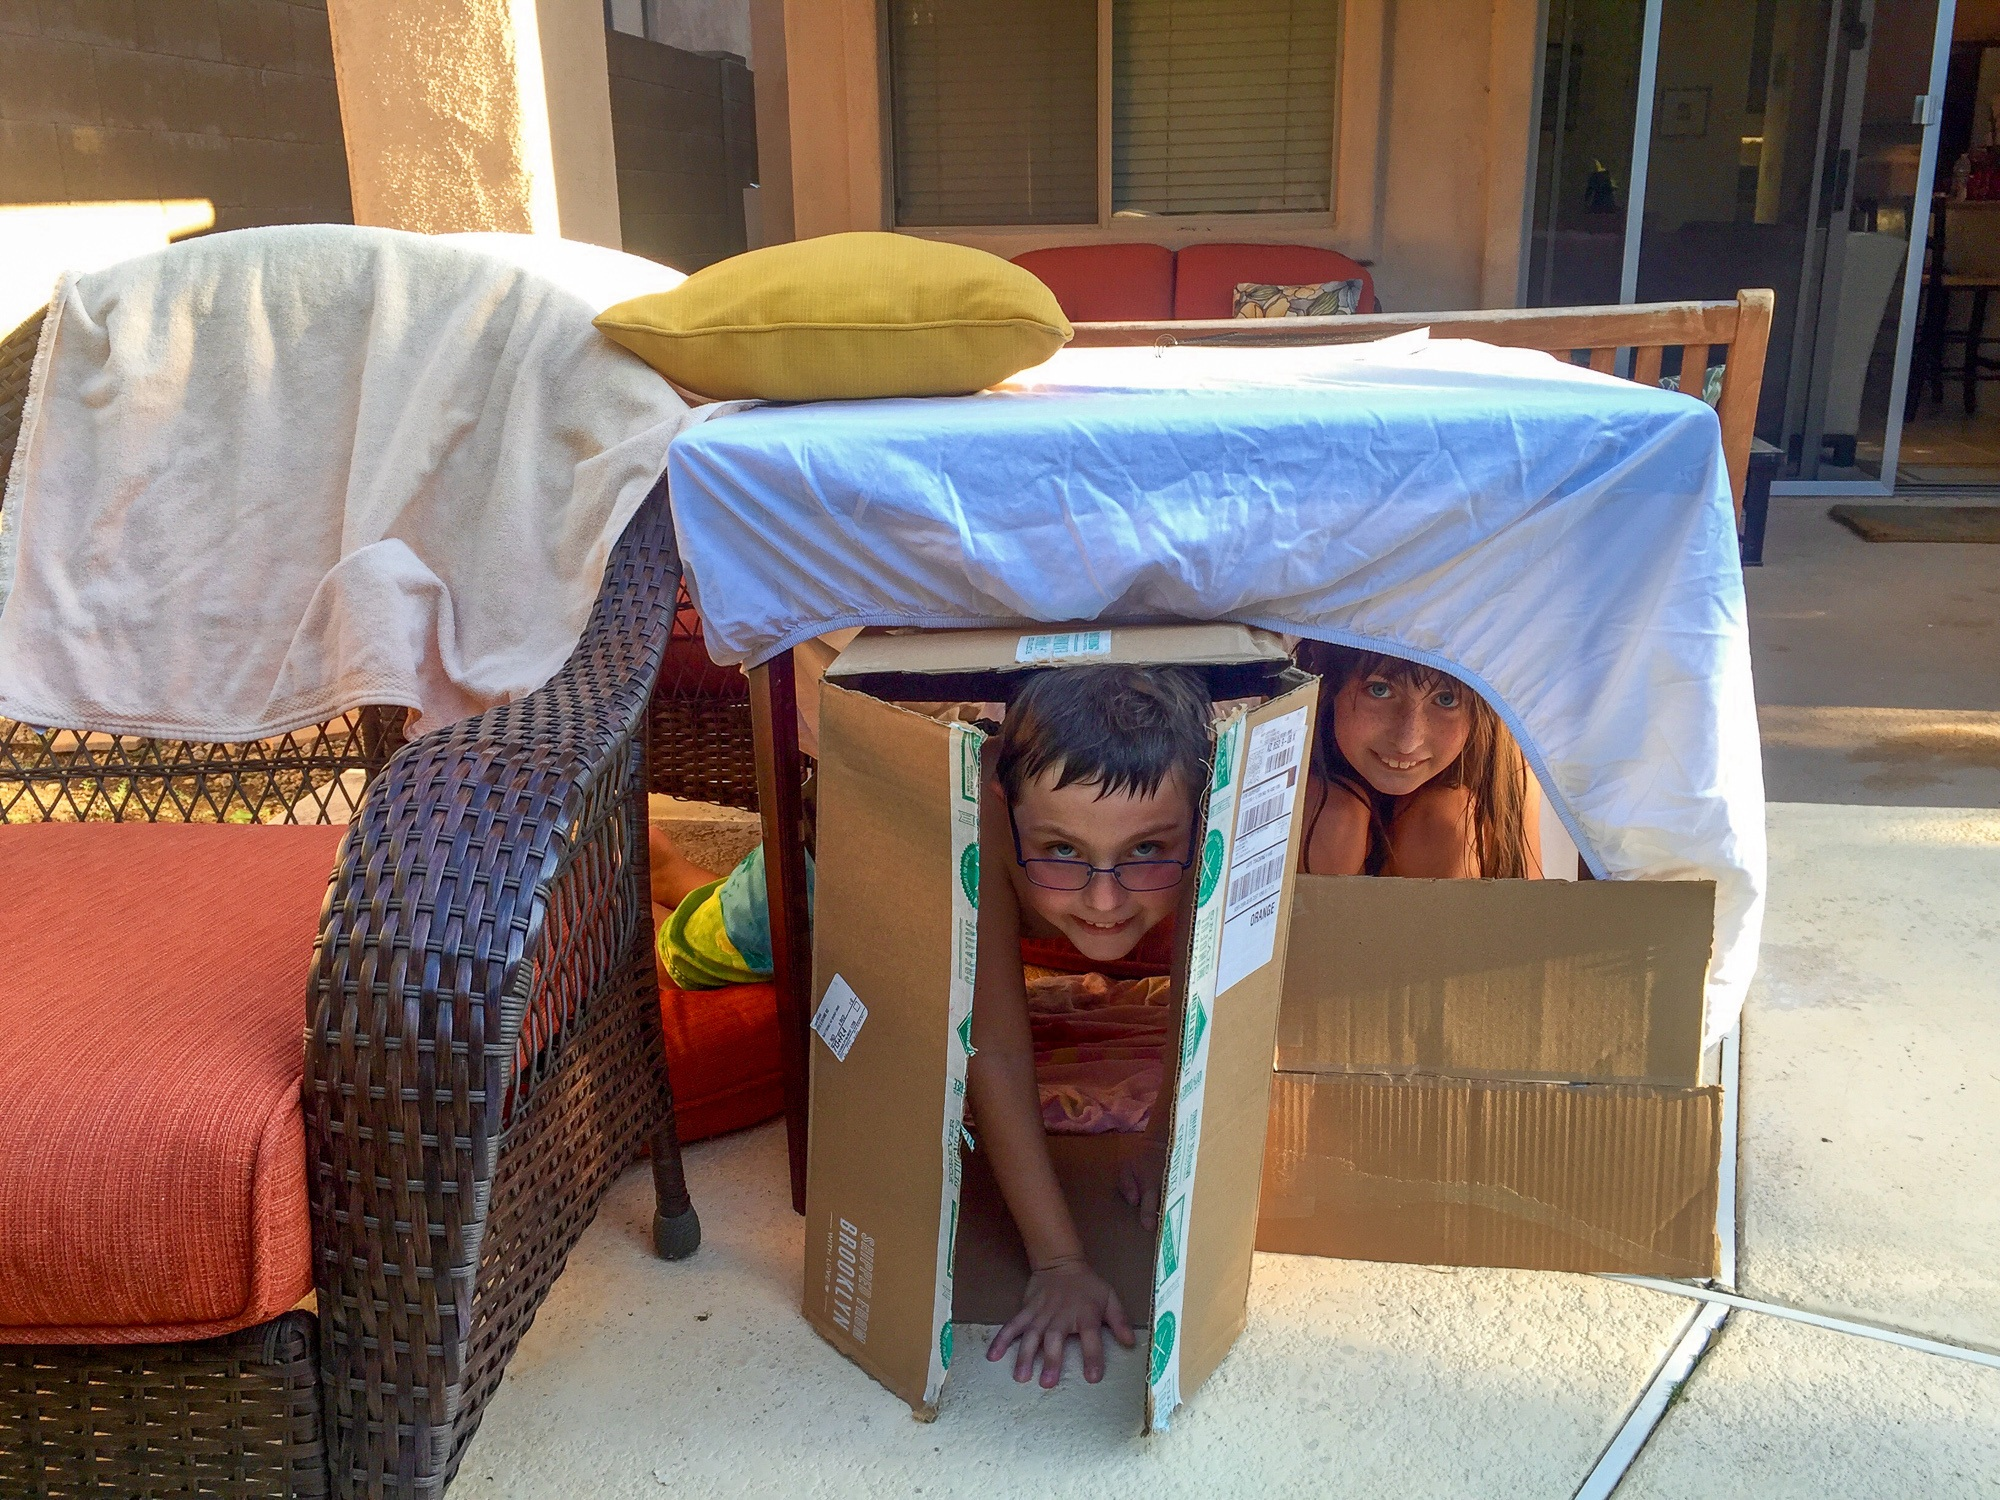 Backyard fort built by kids